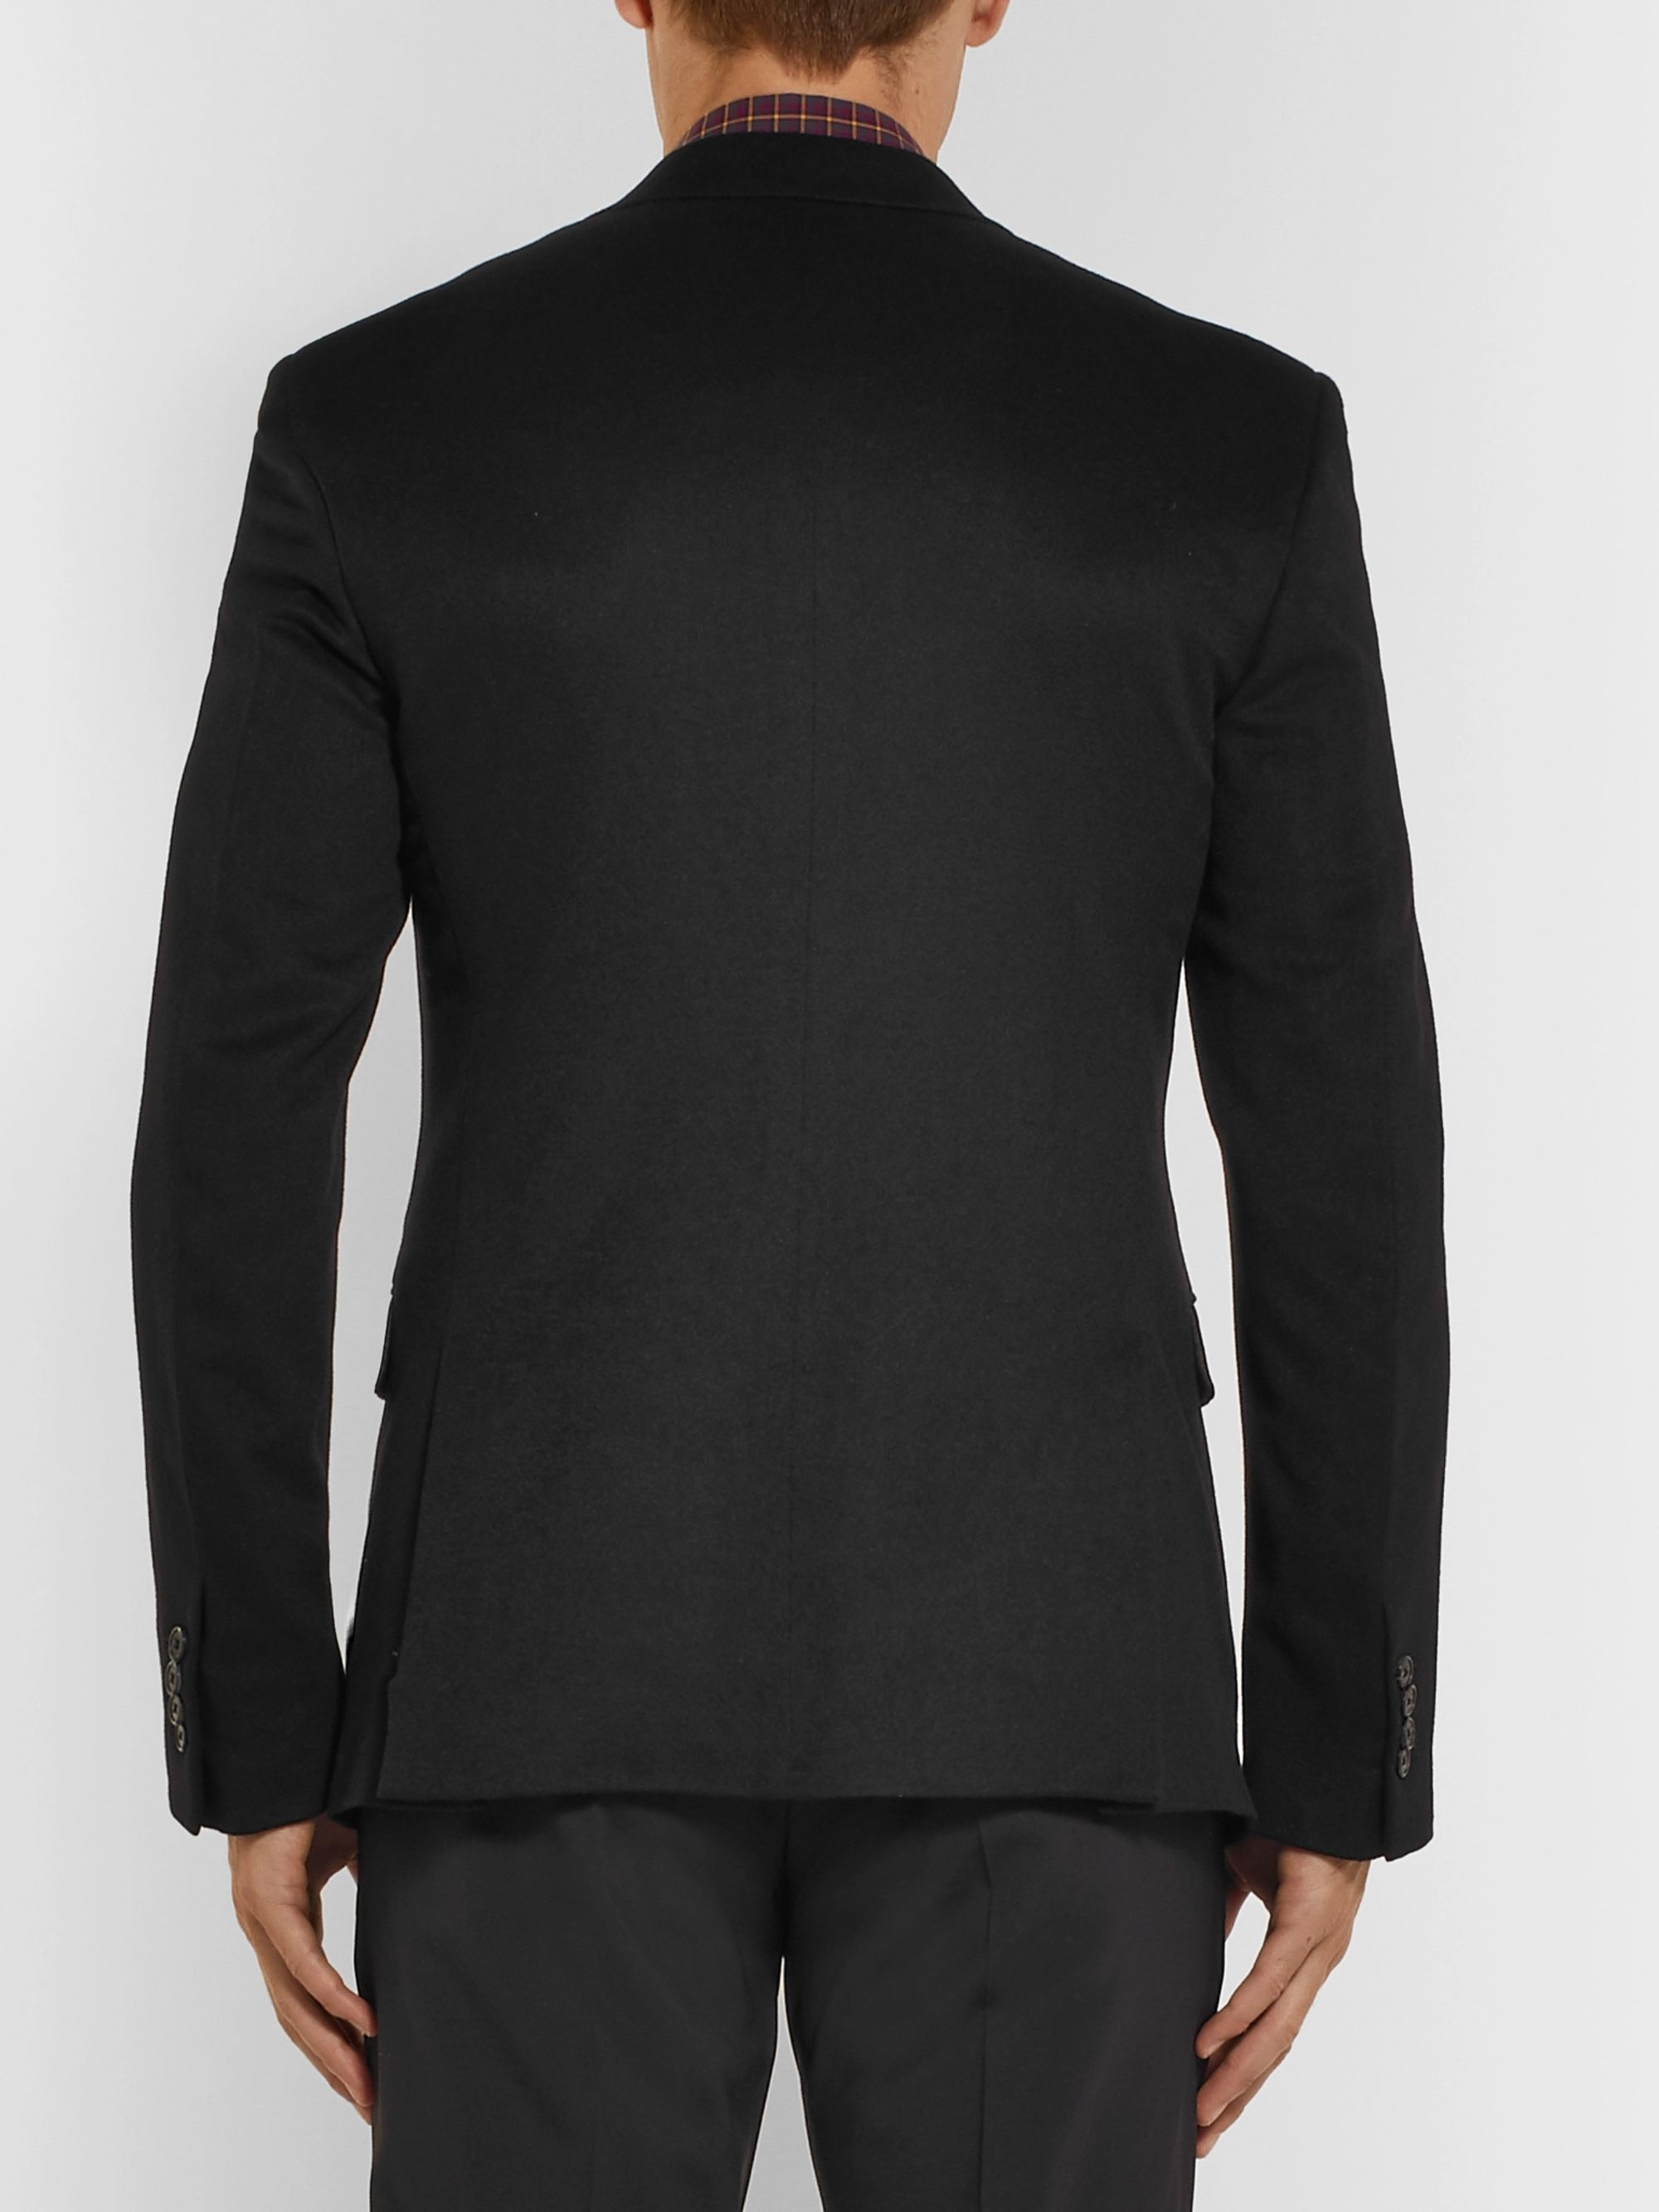 Prada Black Slim-Fit Cashmere Blazer